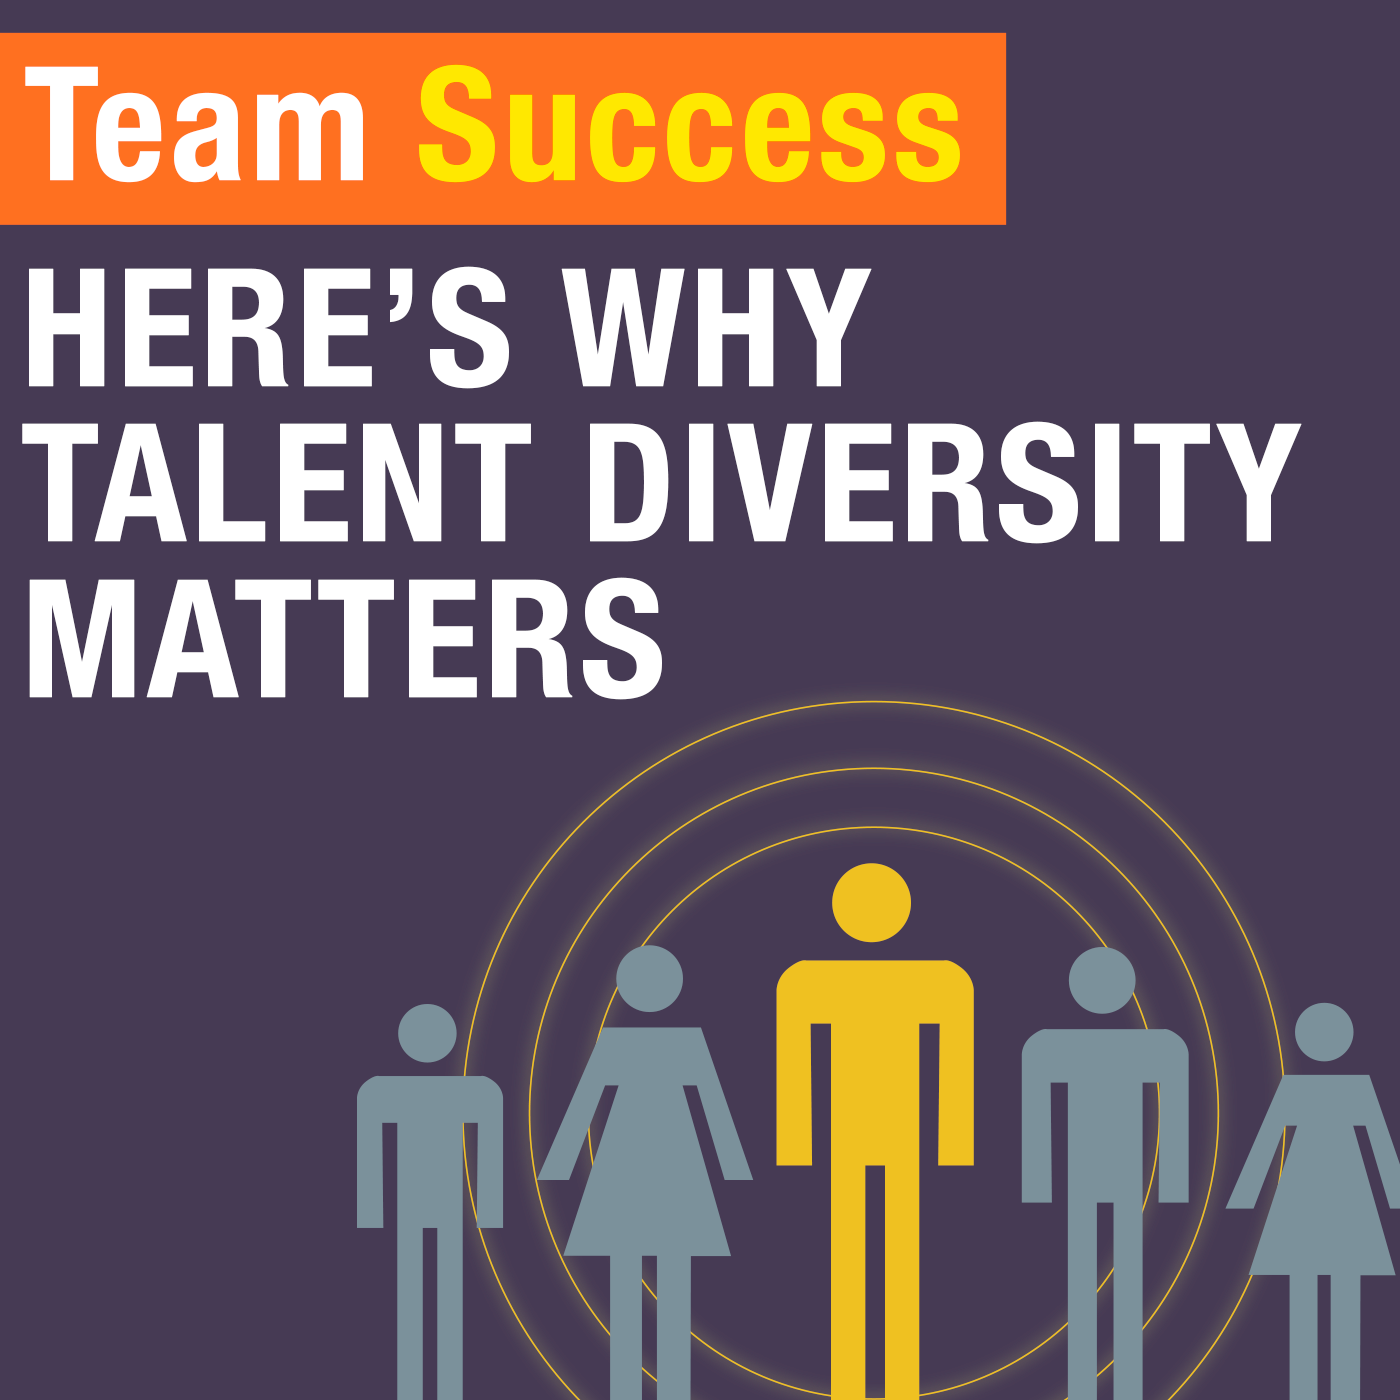 Here's Why Talent Diversity Matters